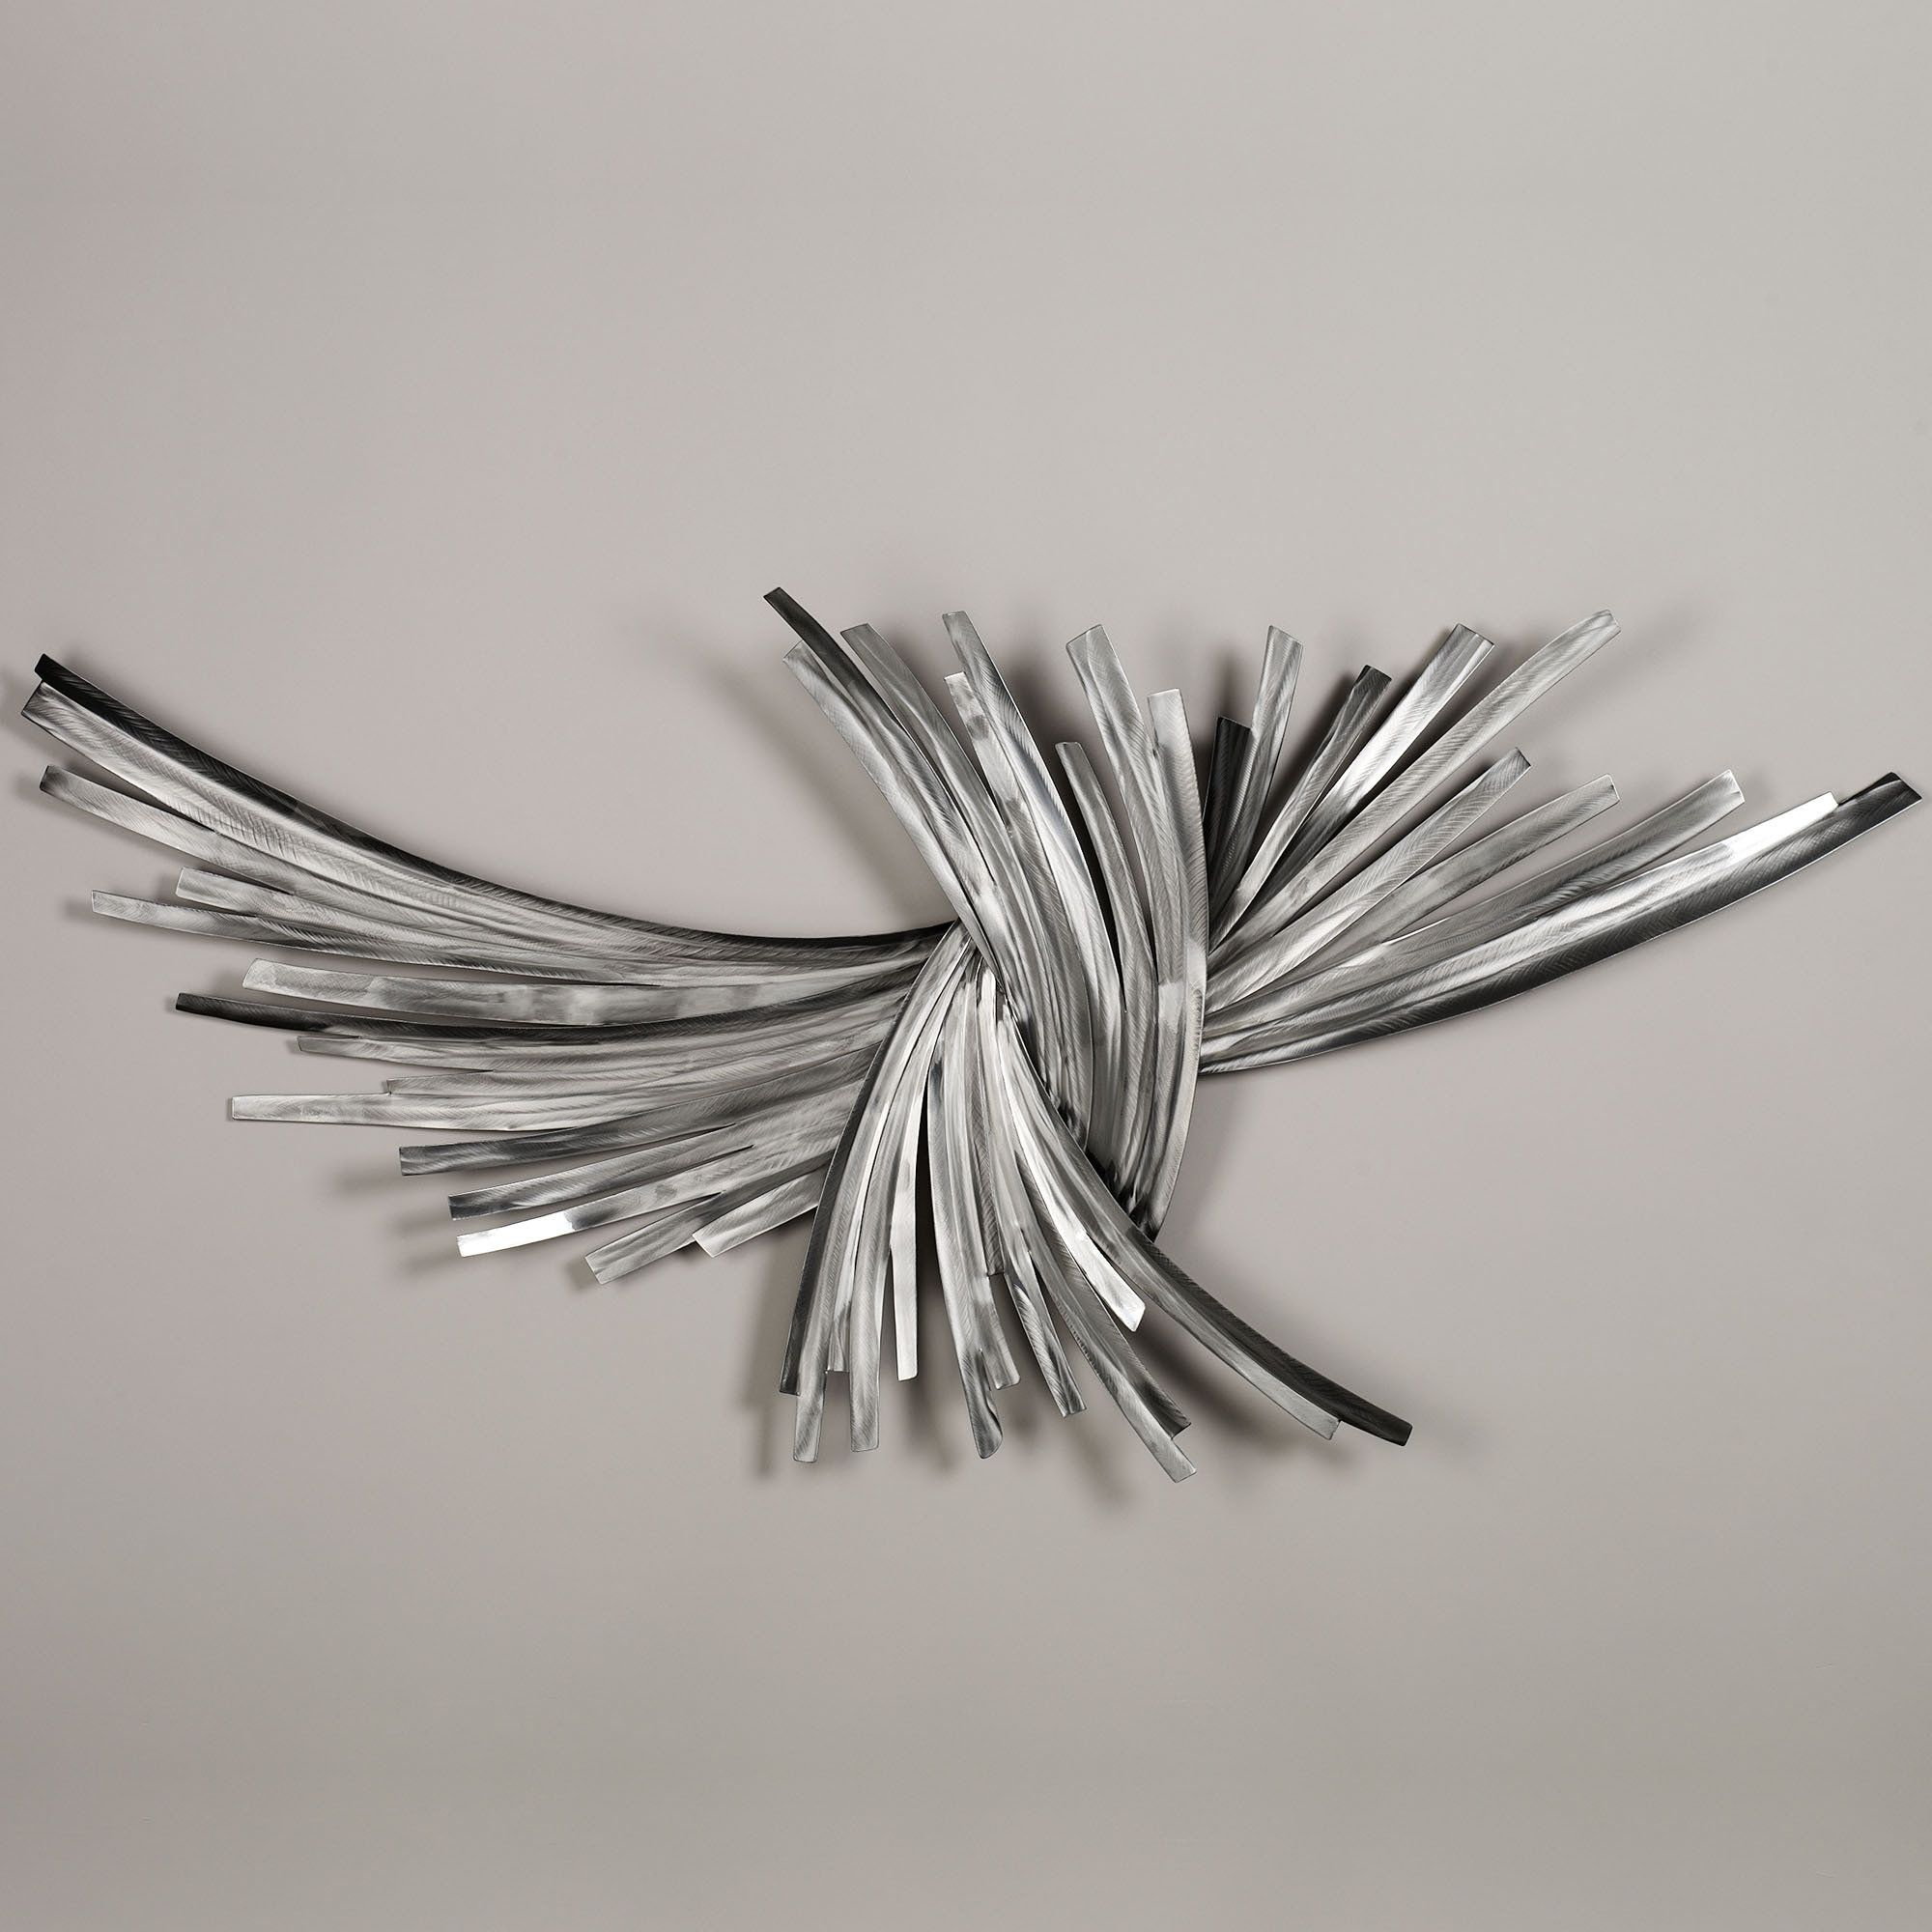 Infinity Silver Metal Wall Sculpture  Silver metal wall art